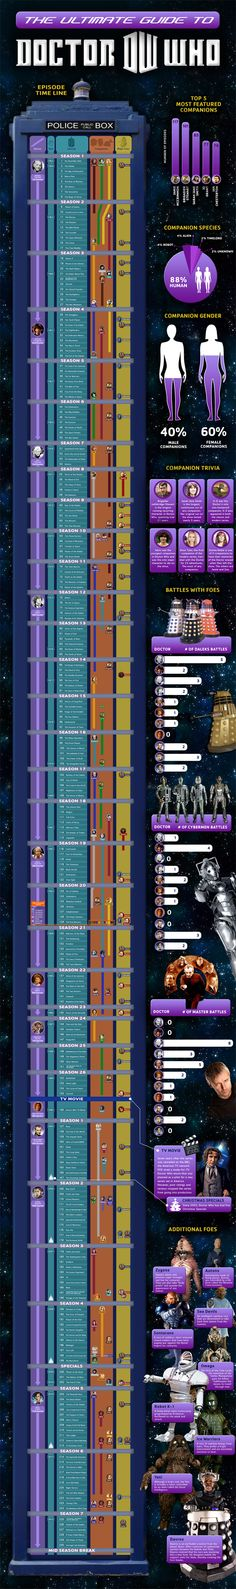 Love Dr. Who?  [Inforgraphic]